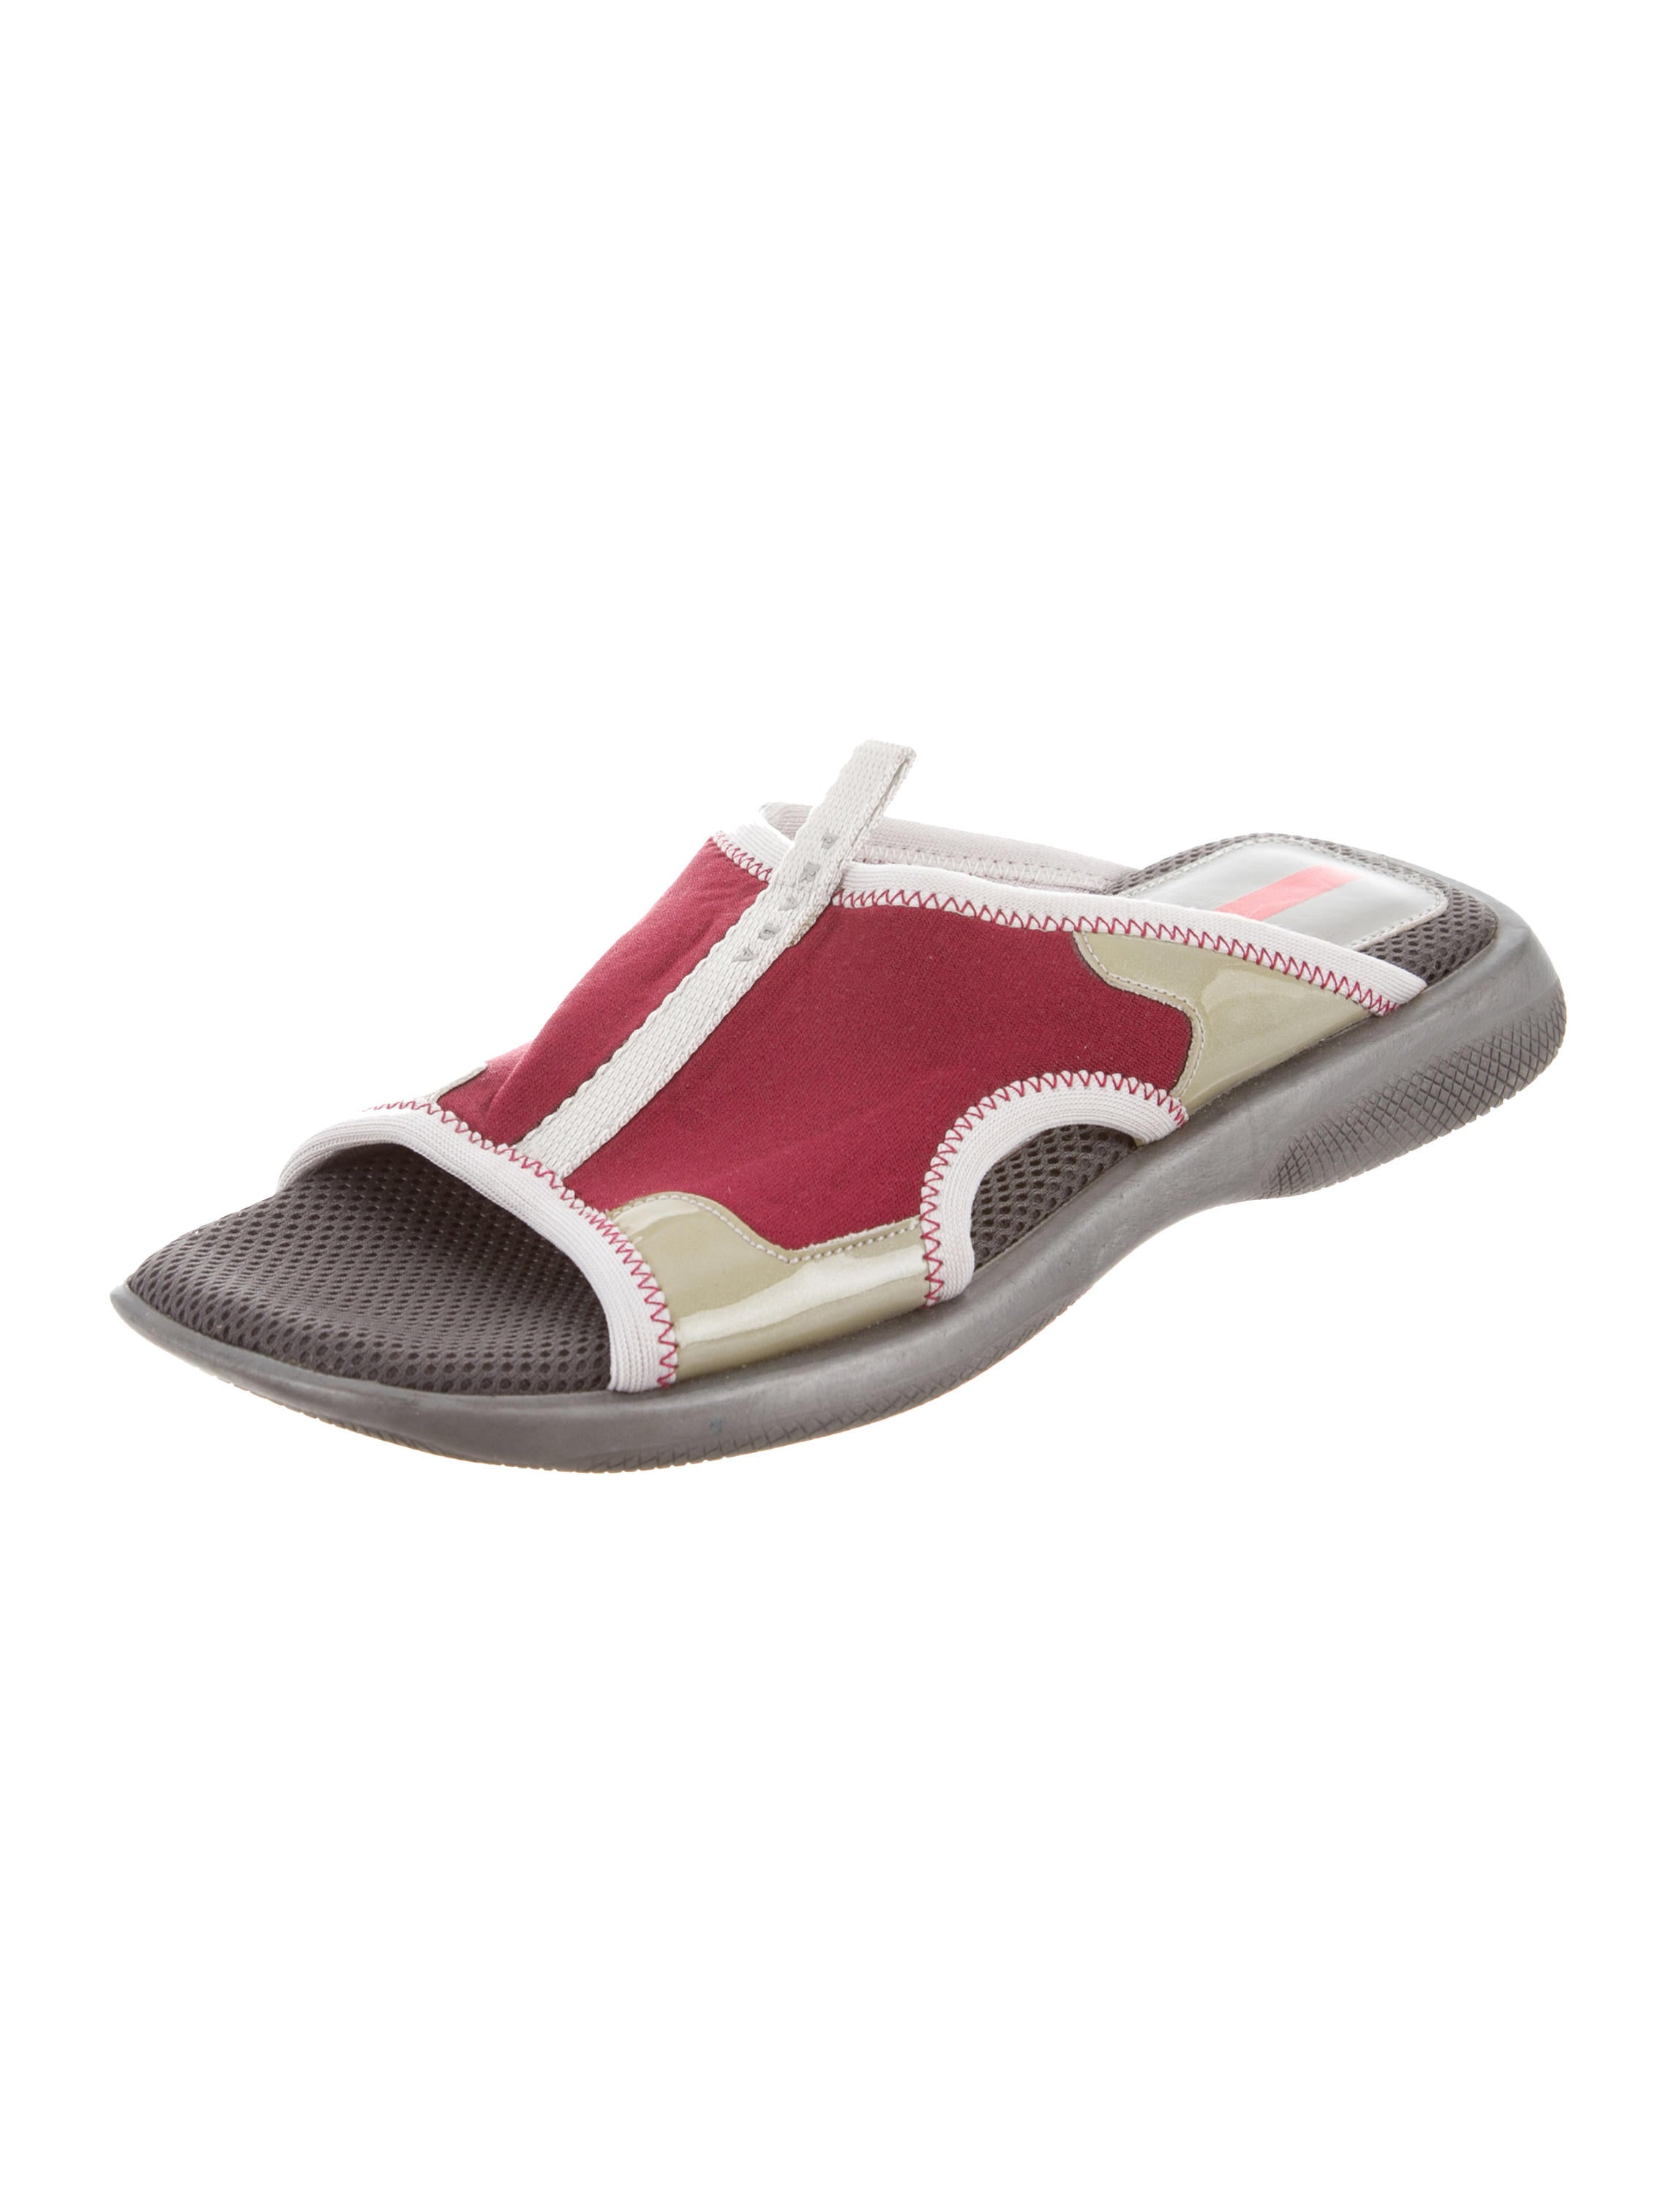 discounts for sale Prada Sport Neoprene Slide Sandals clearance prices brand new unisex online cheap 2014 new 8Ftdn3R2